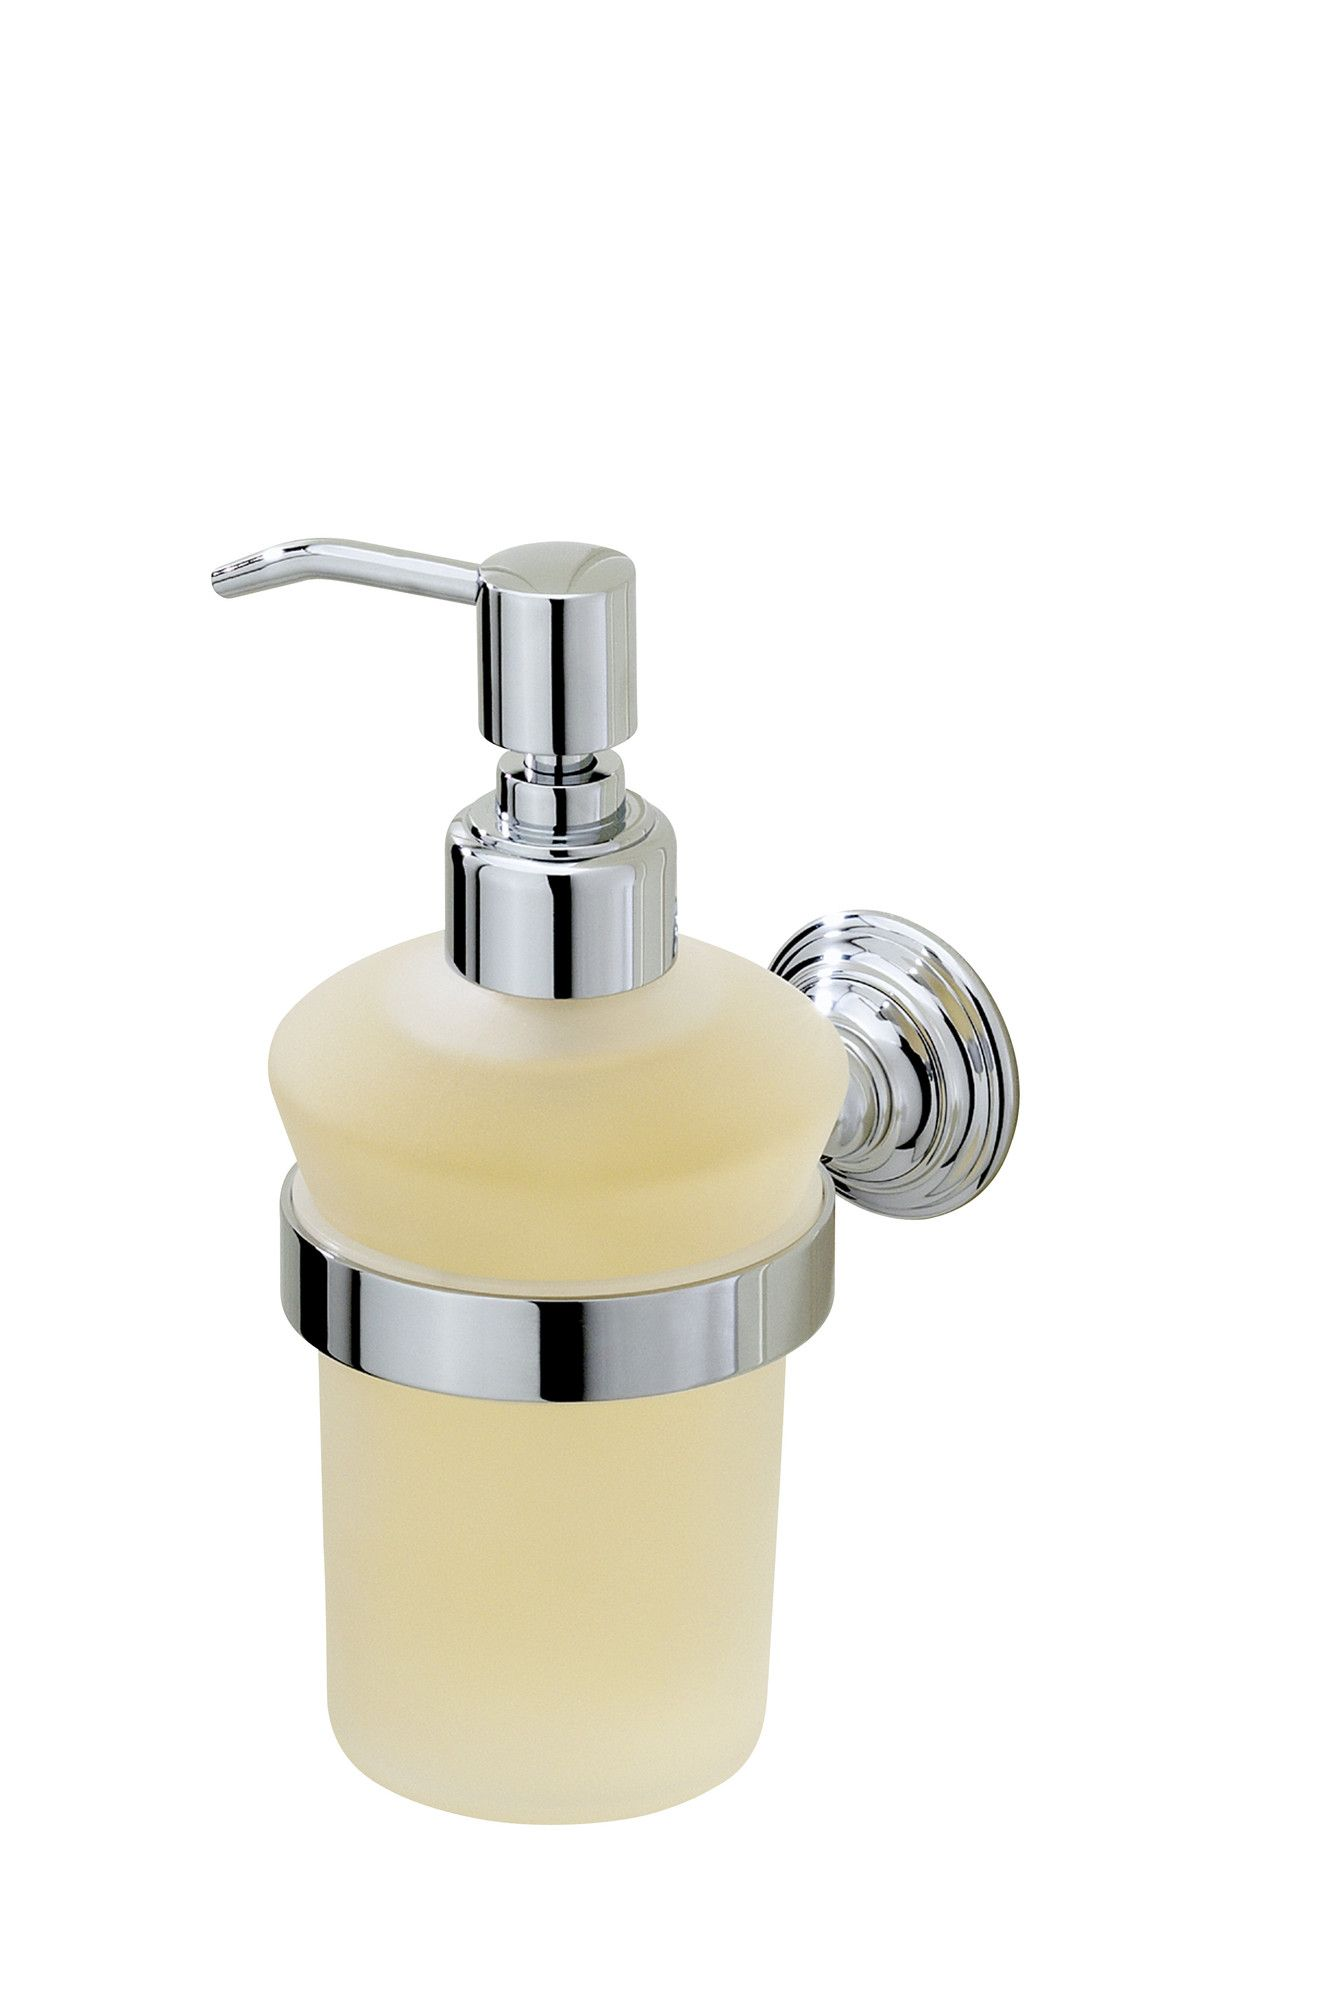 kingston liquid soap dispenser products rh pinterest fr